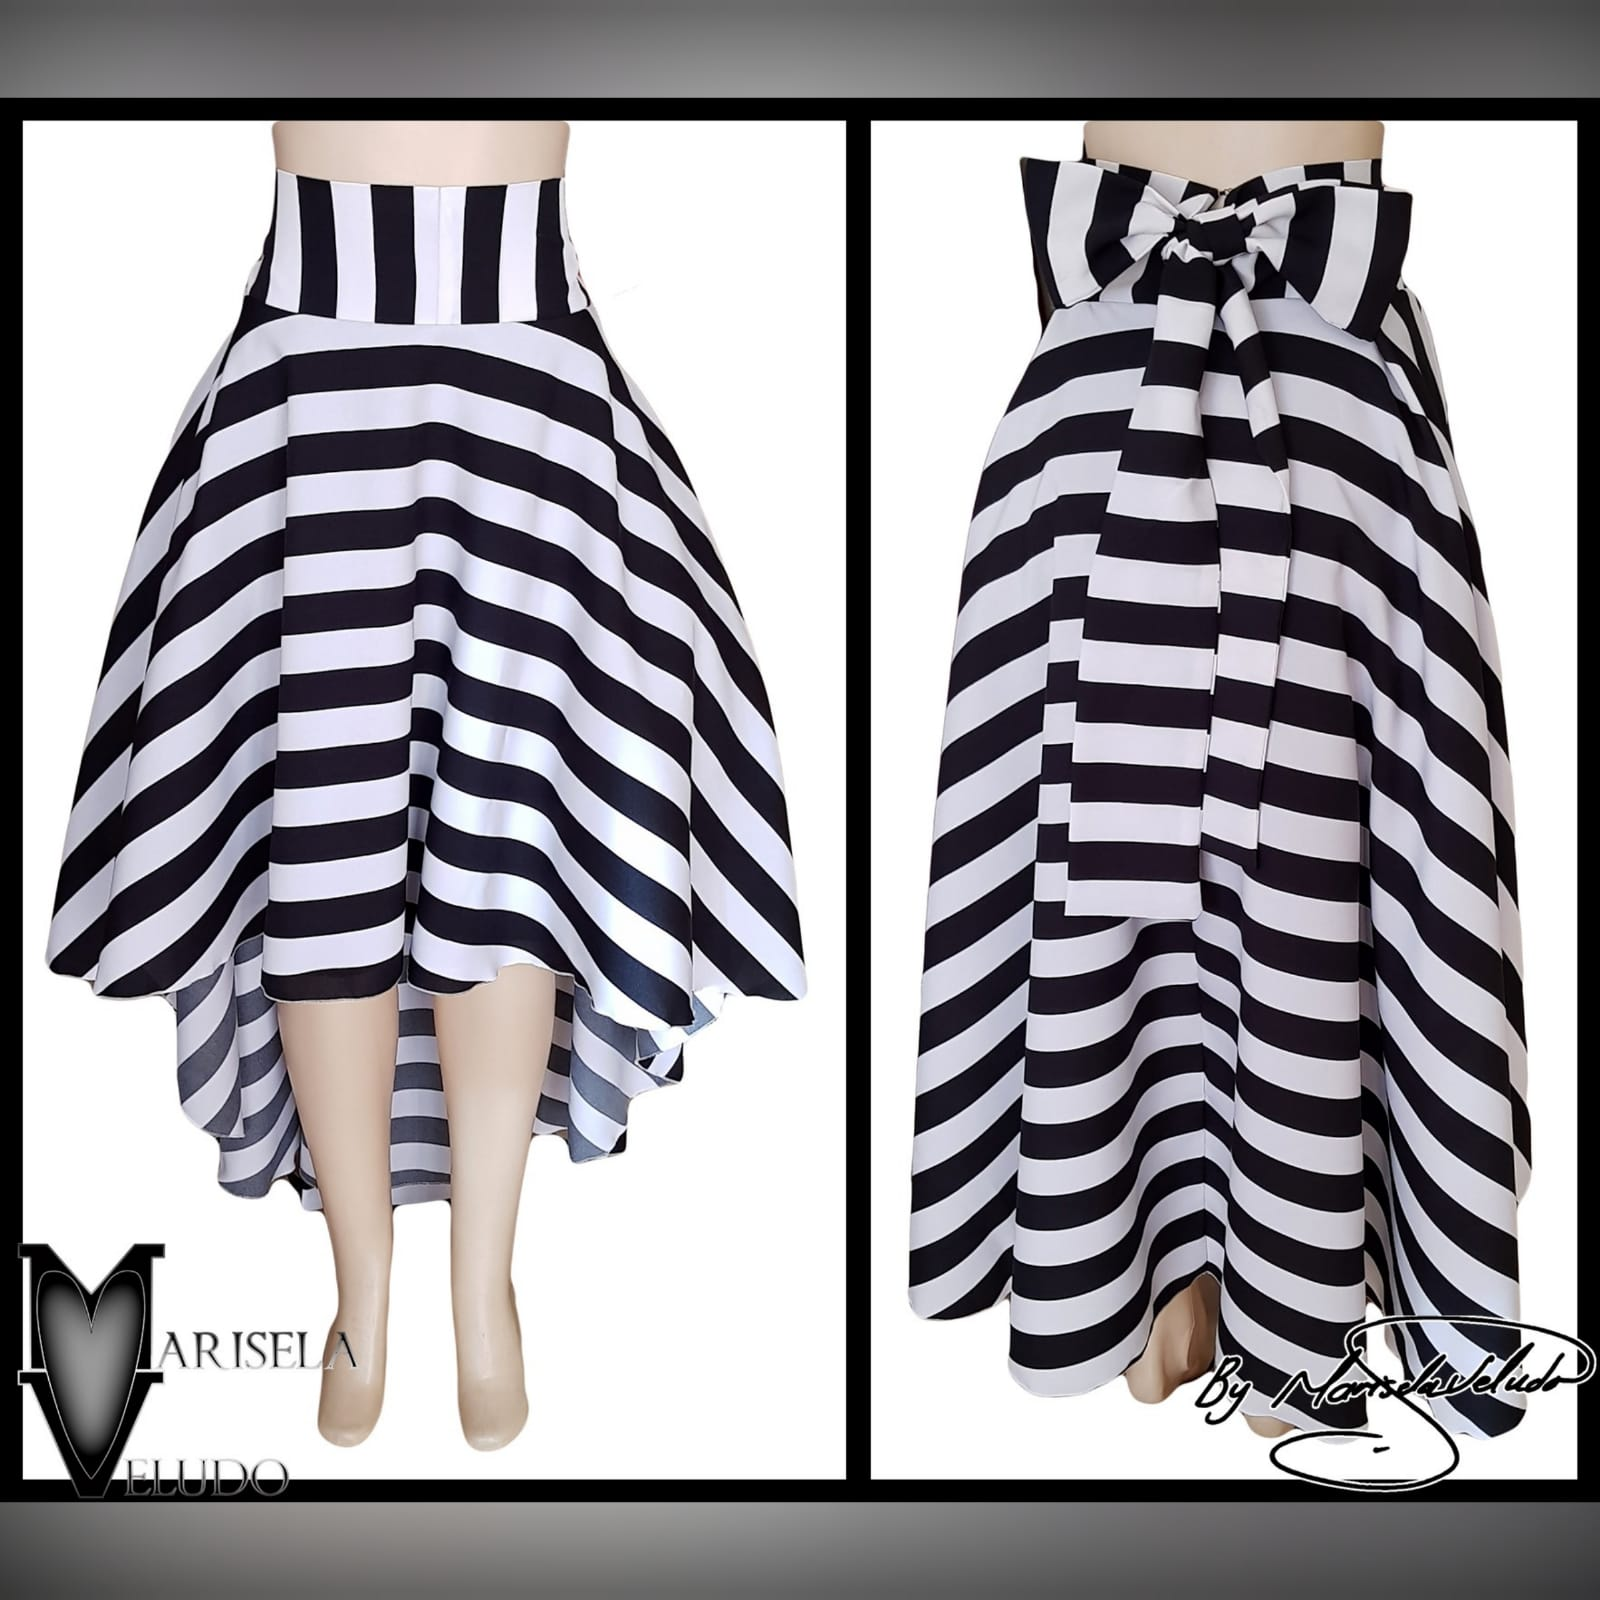 Black and white horizontal striped smart casual skirt 2 black and white horizontal striped high low, high waist smart casual skirt with bow detail on the back.